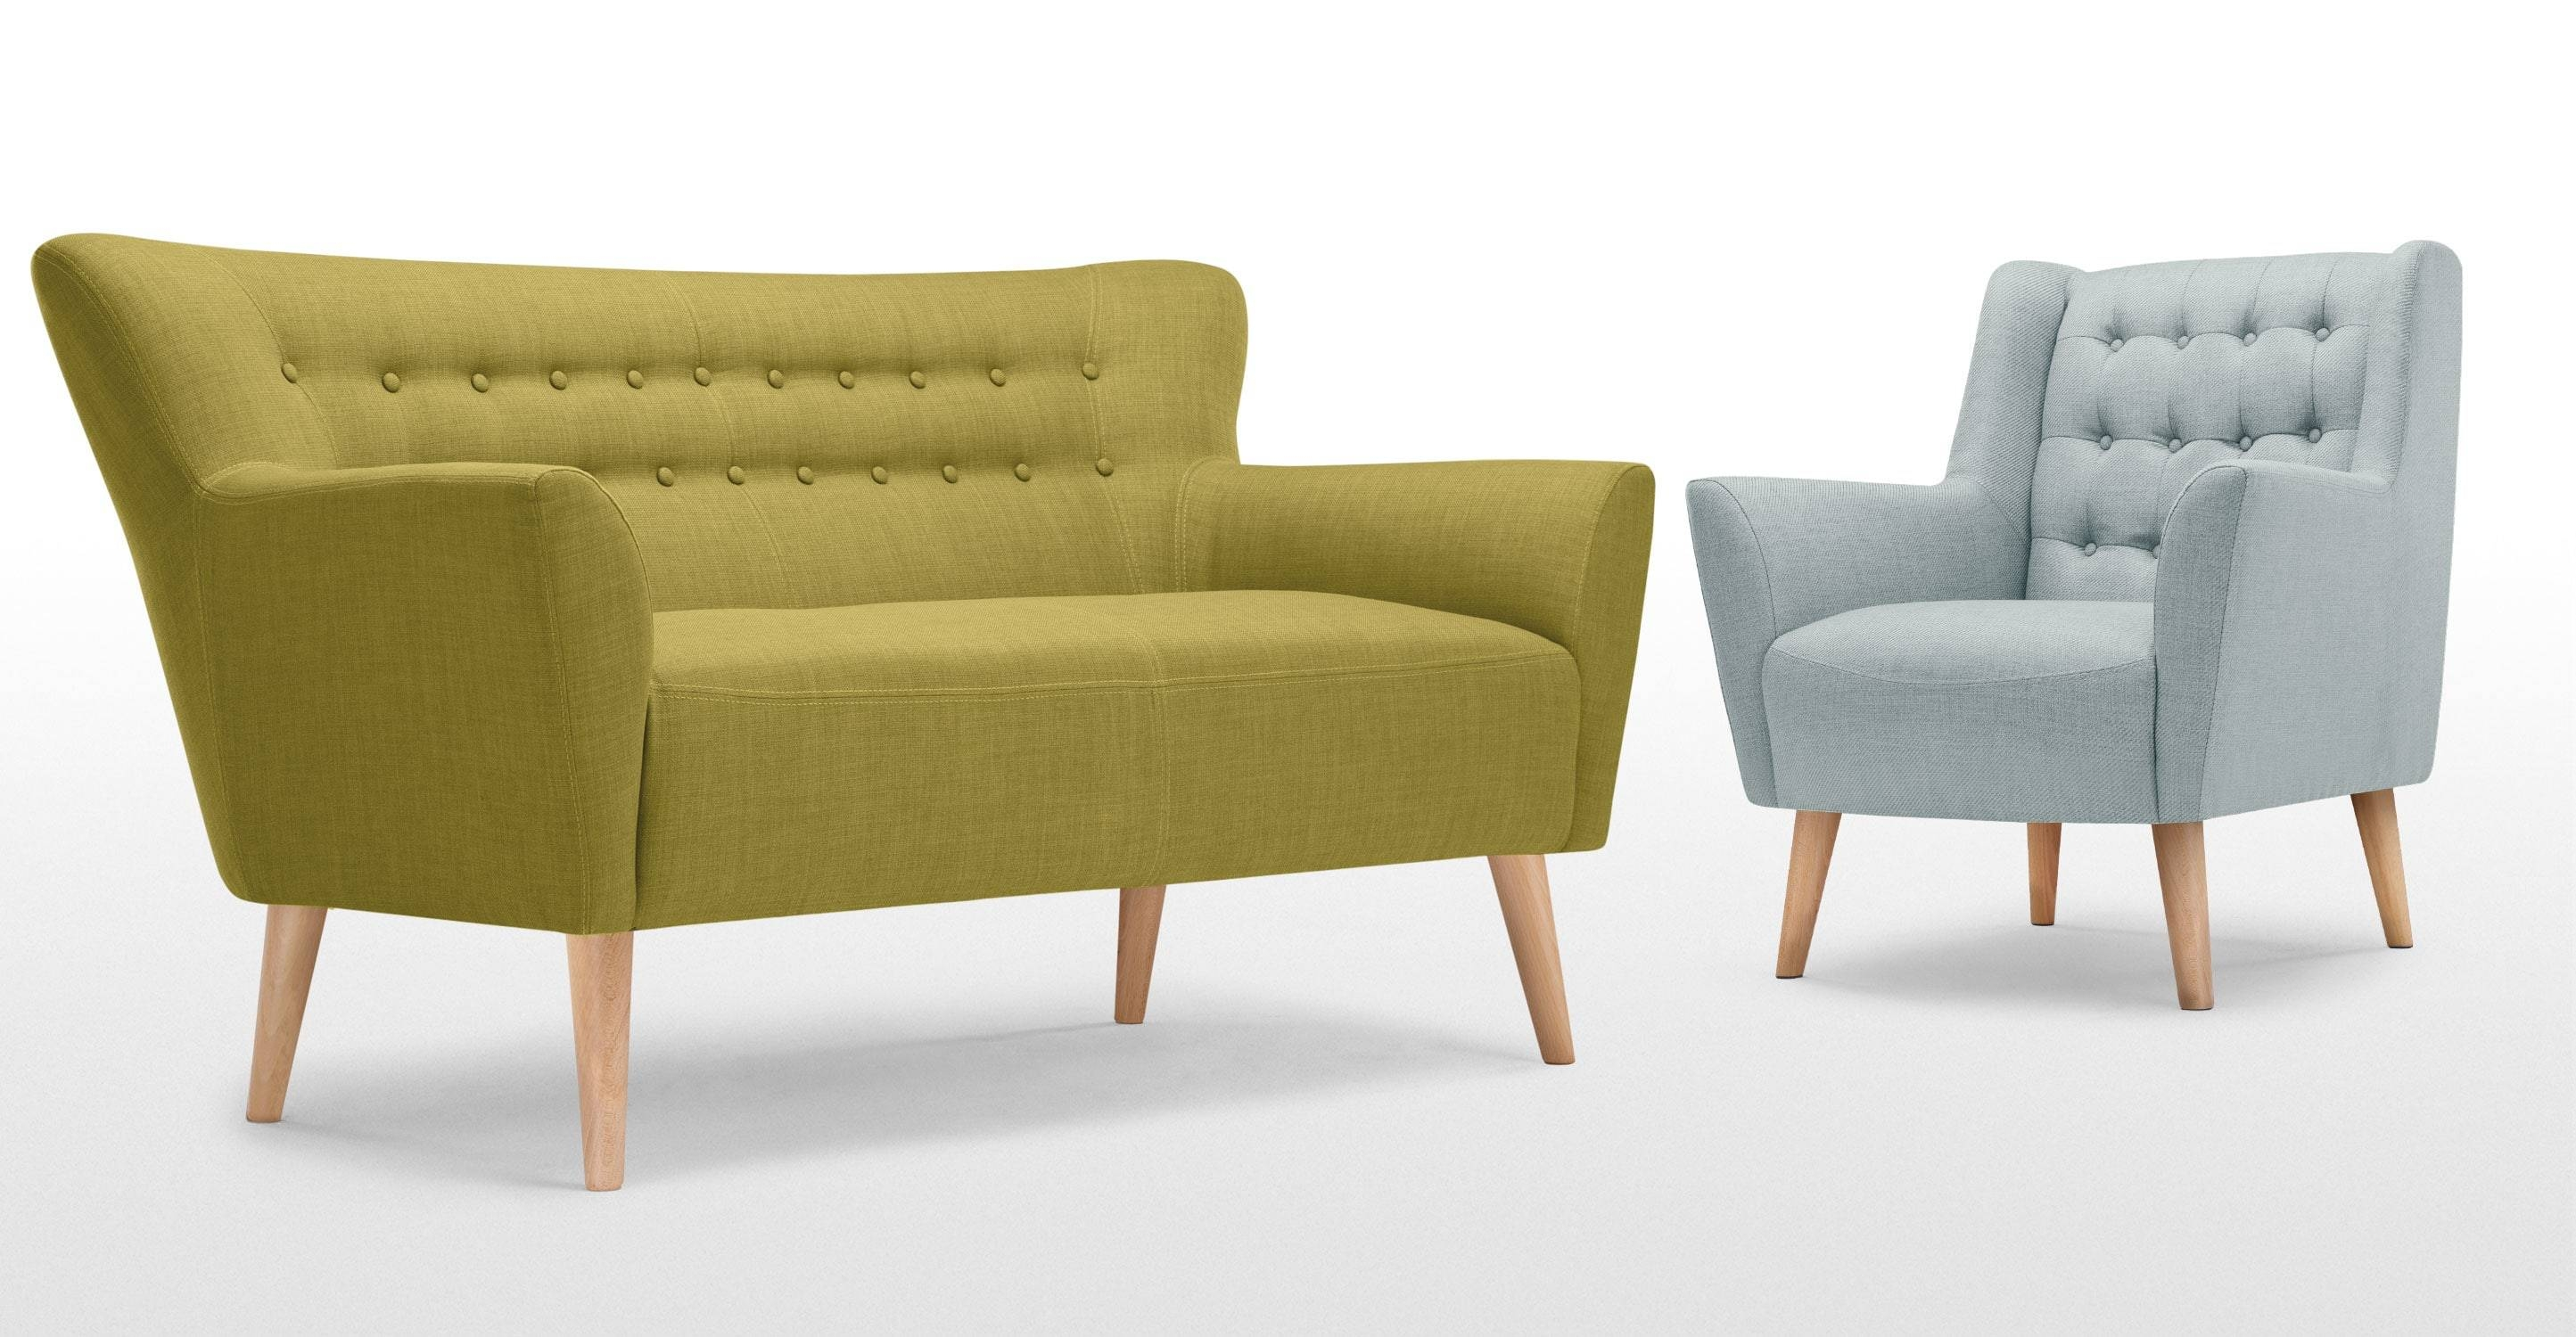 Sofas Center : Small Seater Sofas Uk For Spacessmall Uksmall Pertaining To Small 2 Seater Sofas (View 27 of 30)